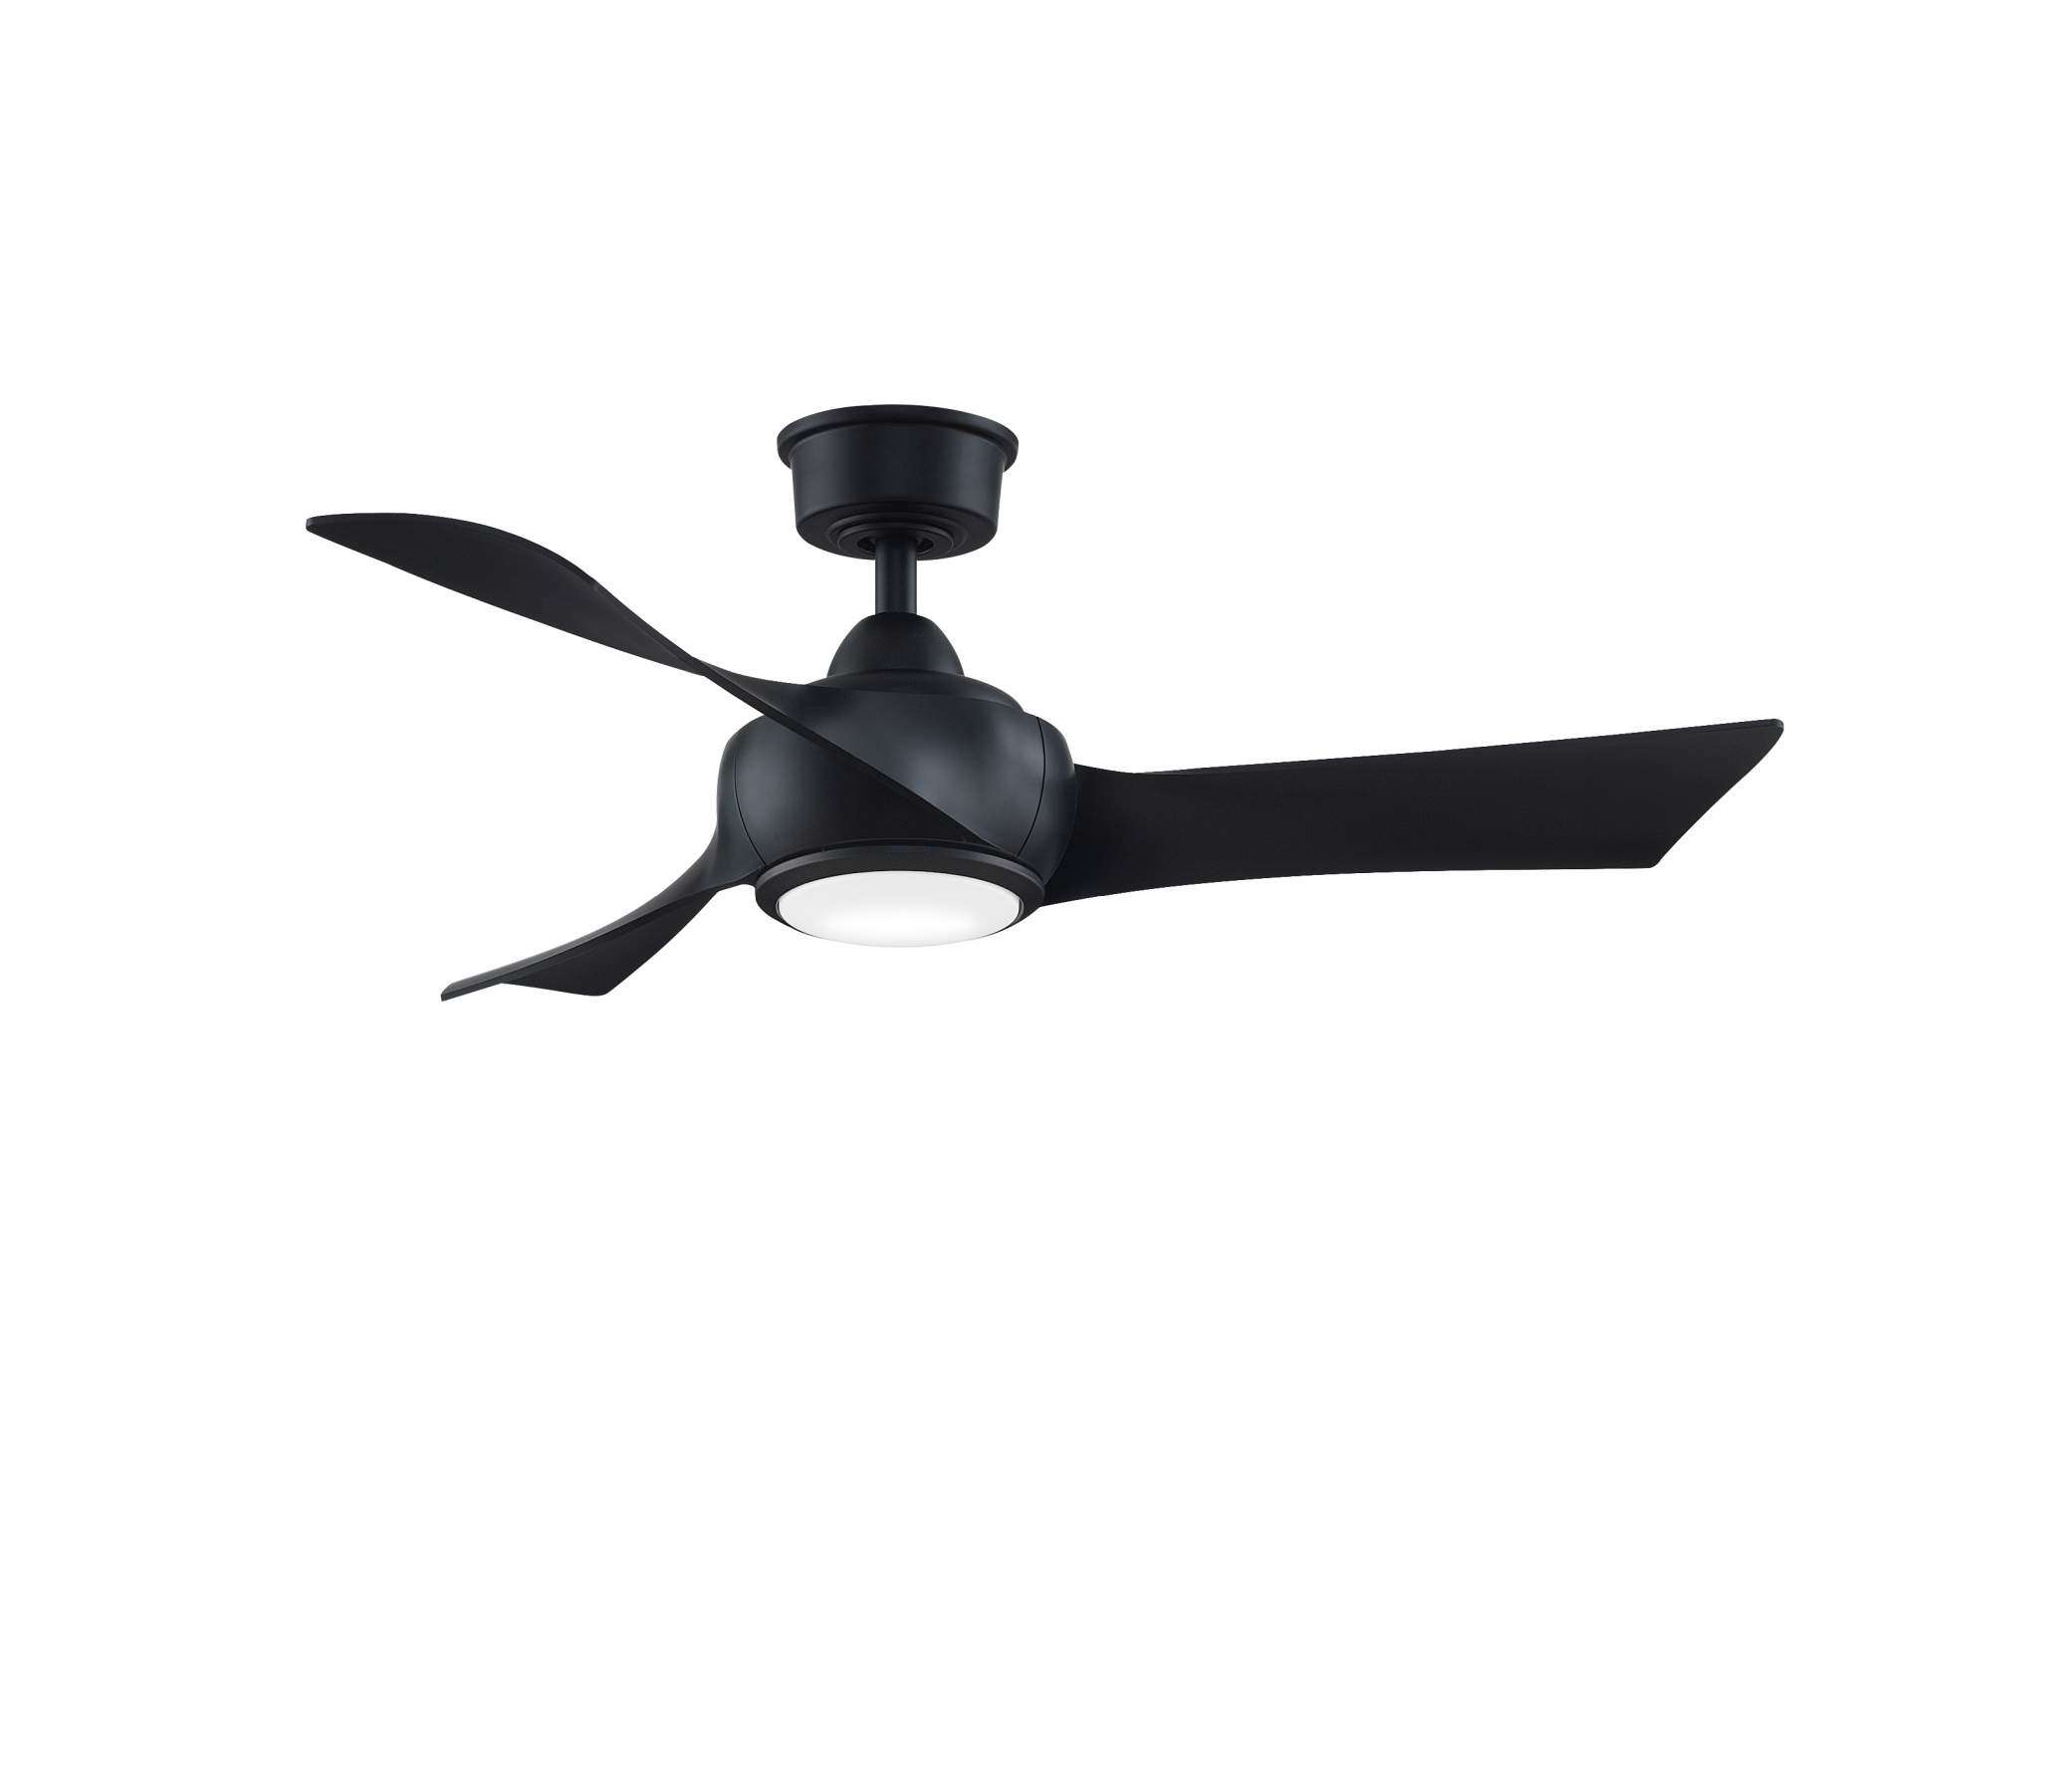 Fanimation MAD8530BL Custom Wrap 44 Inch Ceiling Fan in Black. Shown with BPW8530-44BL 44 Inch Black Blades and LK8530BL LED Light Kit.